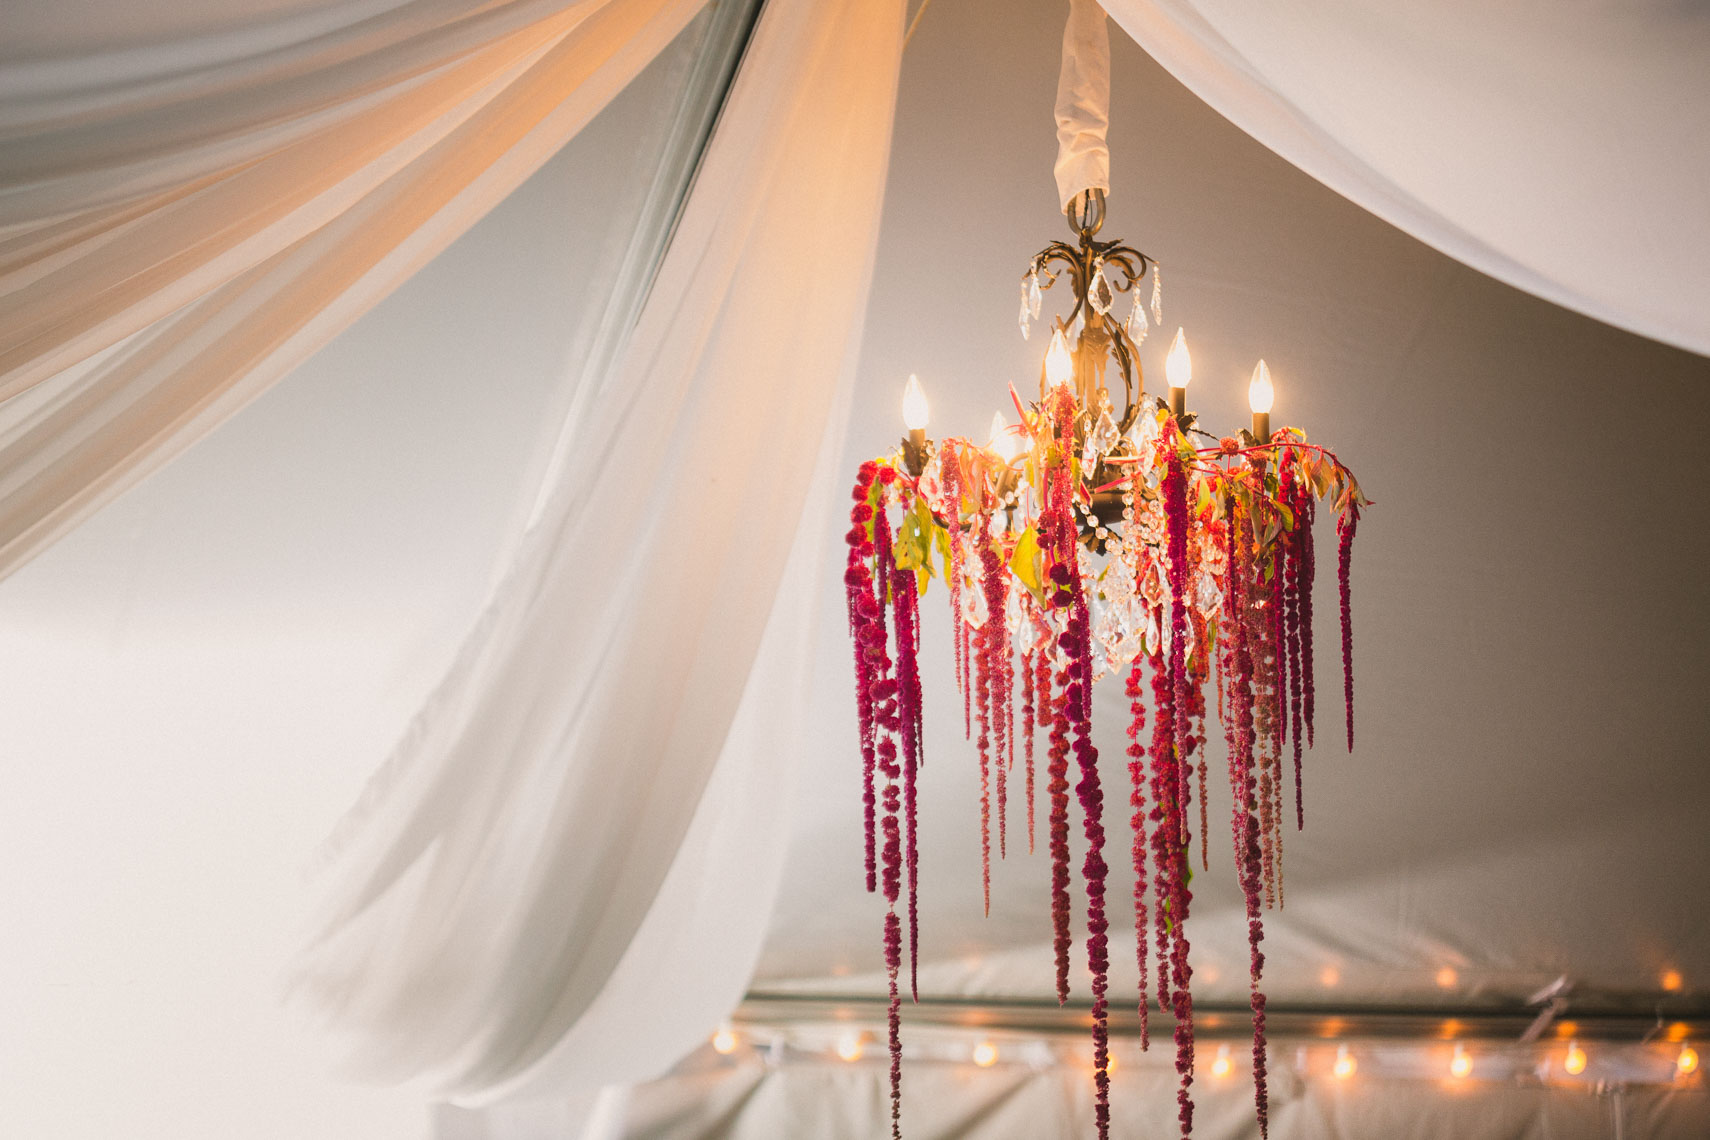 Chandelier with floral decoration in tent at nicklaus north wedding venue